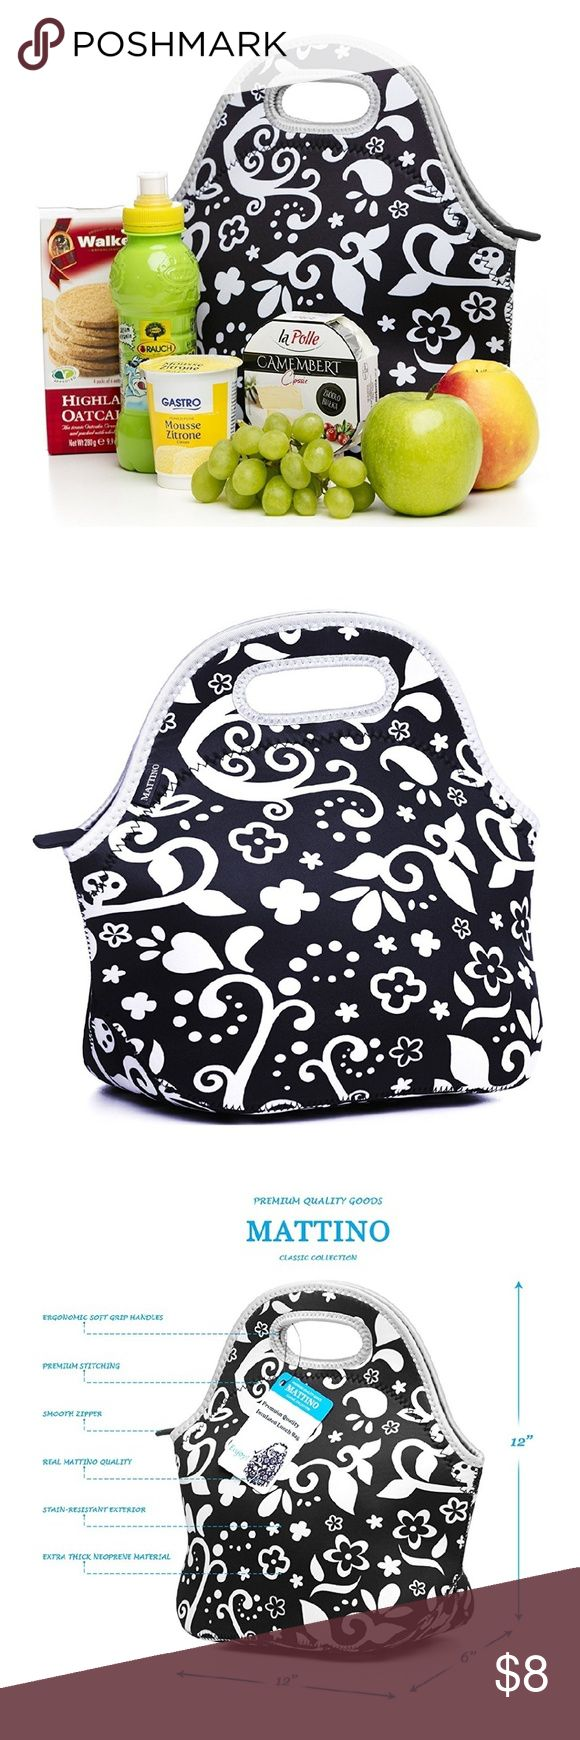 Lunch Bag Insulated Lunch Bag - Neoprene Lunch Bag ? Large Reusable Lunch Tote Bags for Women, Teens, Girls, Kids, Baby, Adults ? Cool Fashion Designer Lunch Box for Work, Office, School or GymMATTINO Insulated Lunch Bag - Neoprene Lunch Bag ? Large Reusable Lunch Tote Bags for Women, Teens, Girls, Kids, Baby, Adults ? Cool Fashion Designer Lunch Box for Work, Office, School or Gym Mattino Bags